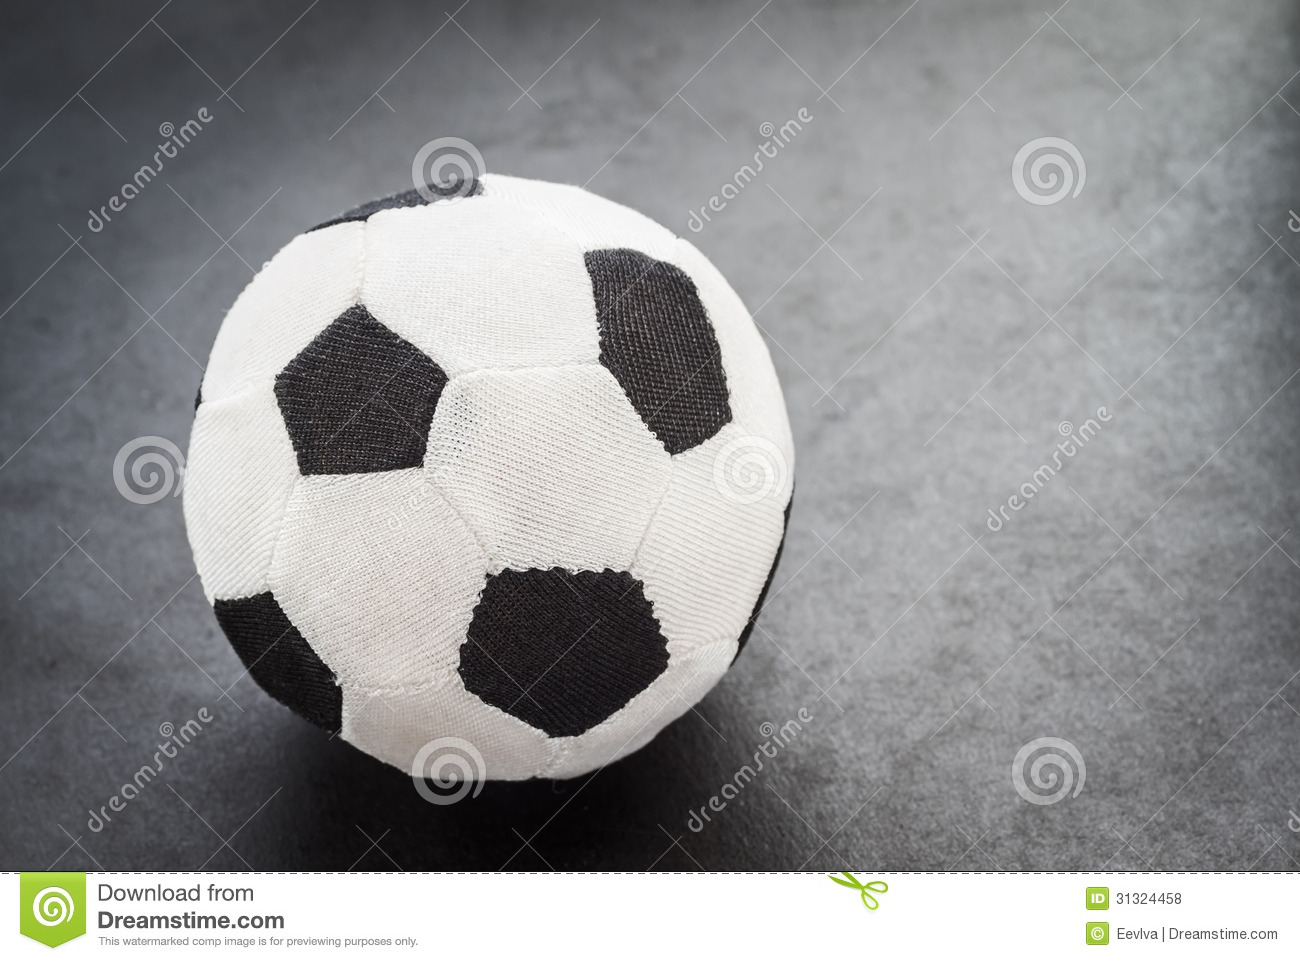 What Is A Soccer Ball Made Of 107